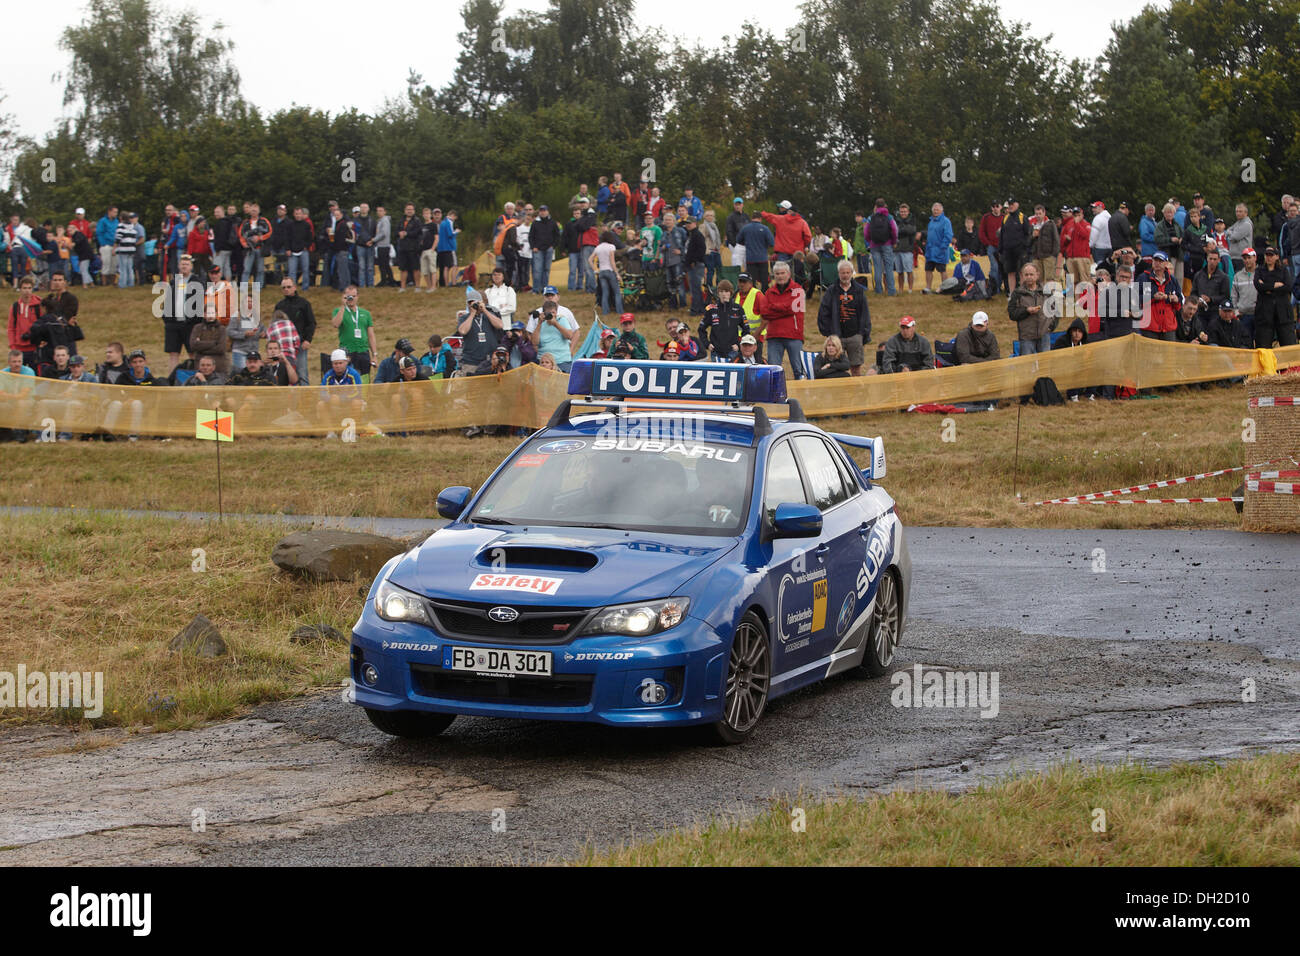 ADAC Rally Deutschland, special stage, Baumholder military training area, a Subaru police car of Baumholder police is the - Stock Image